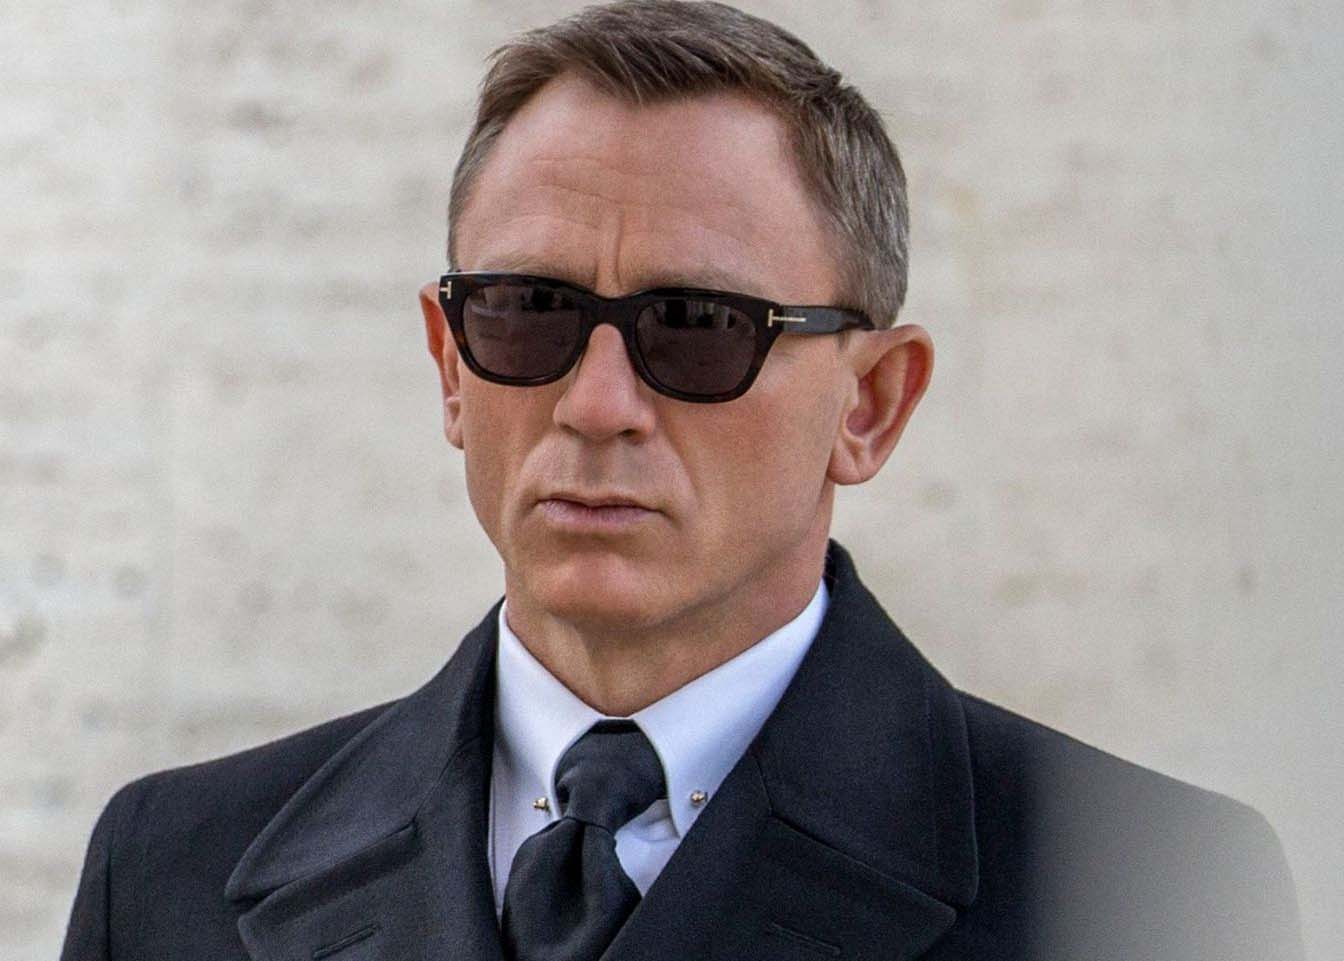 Daniel Craig Haircut 2018